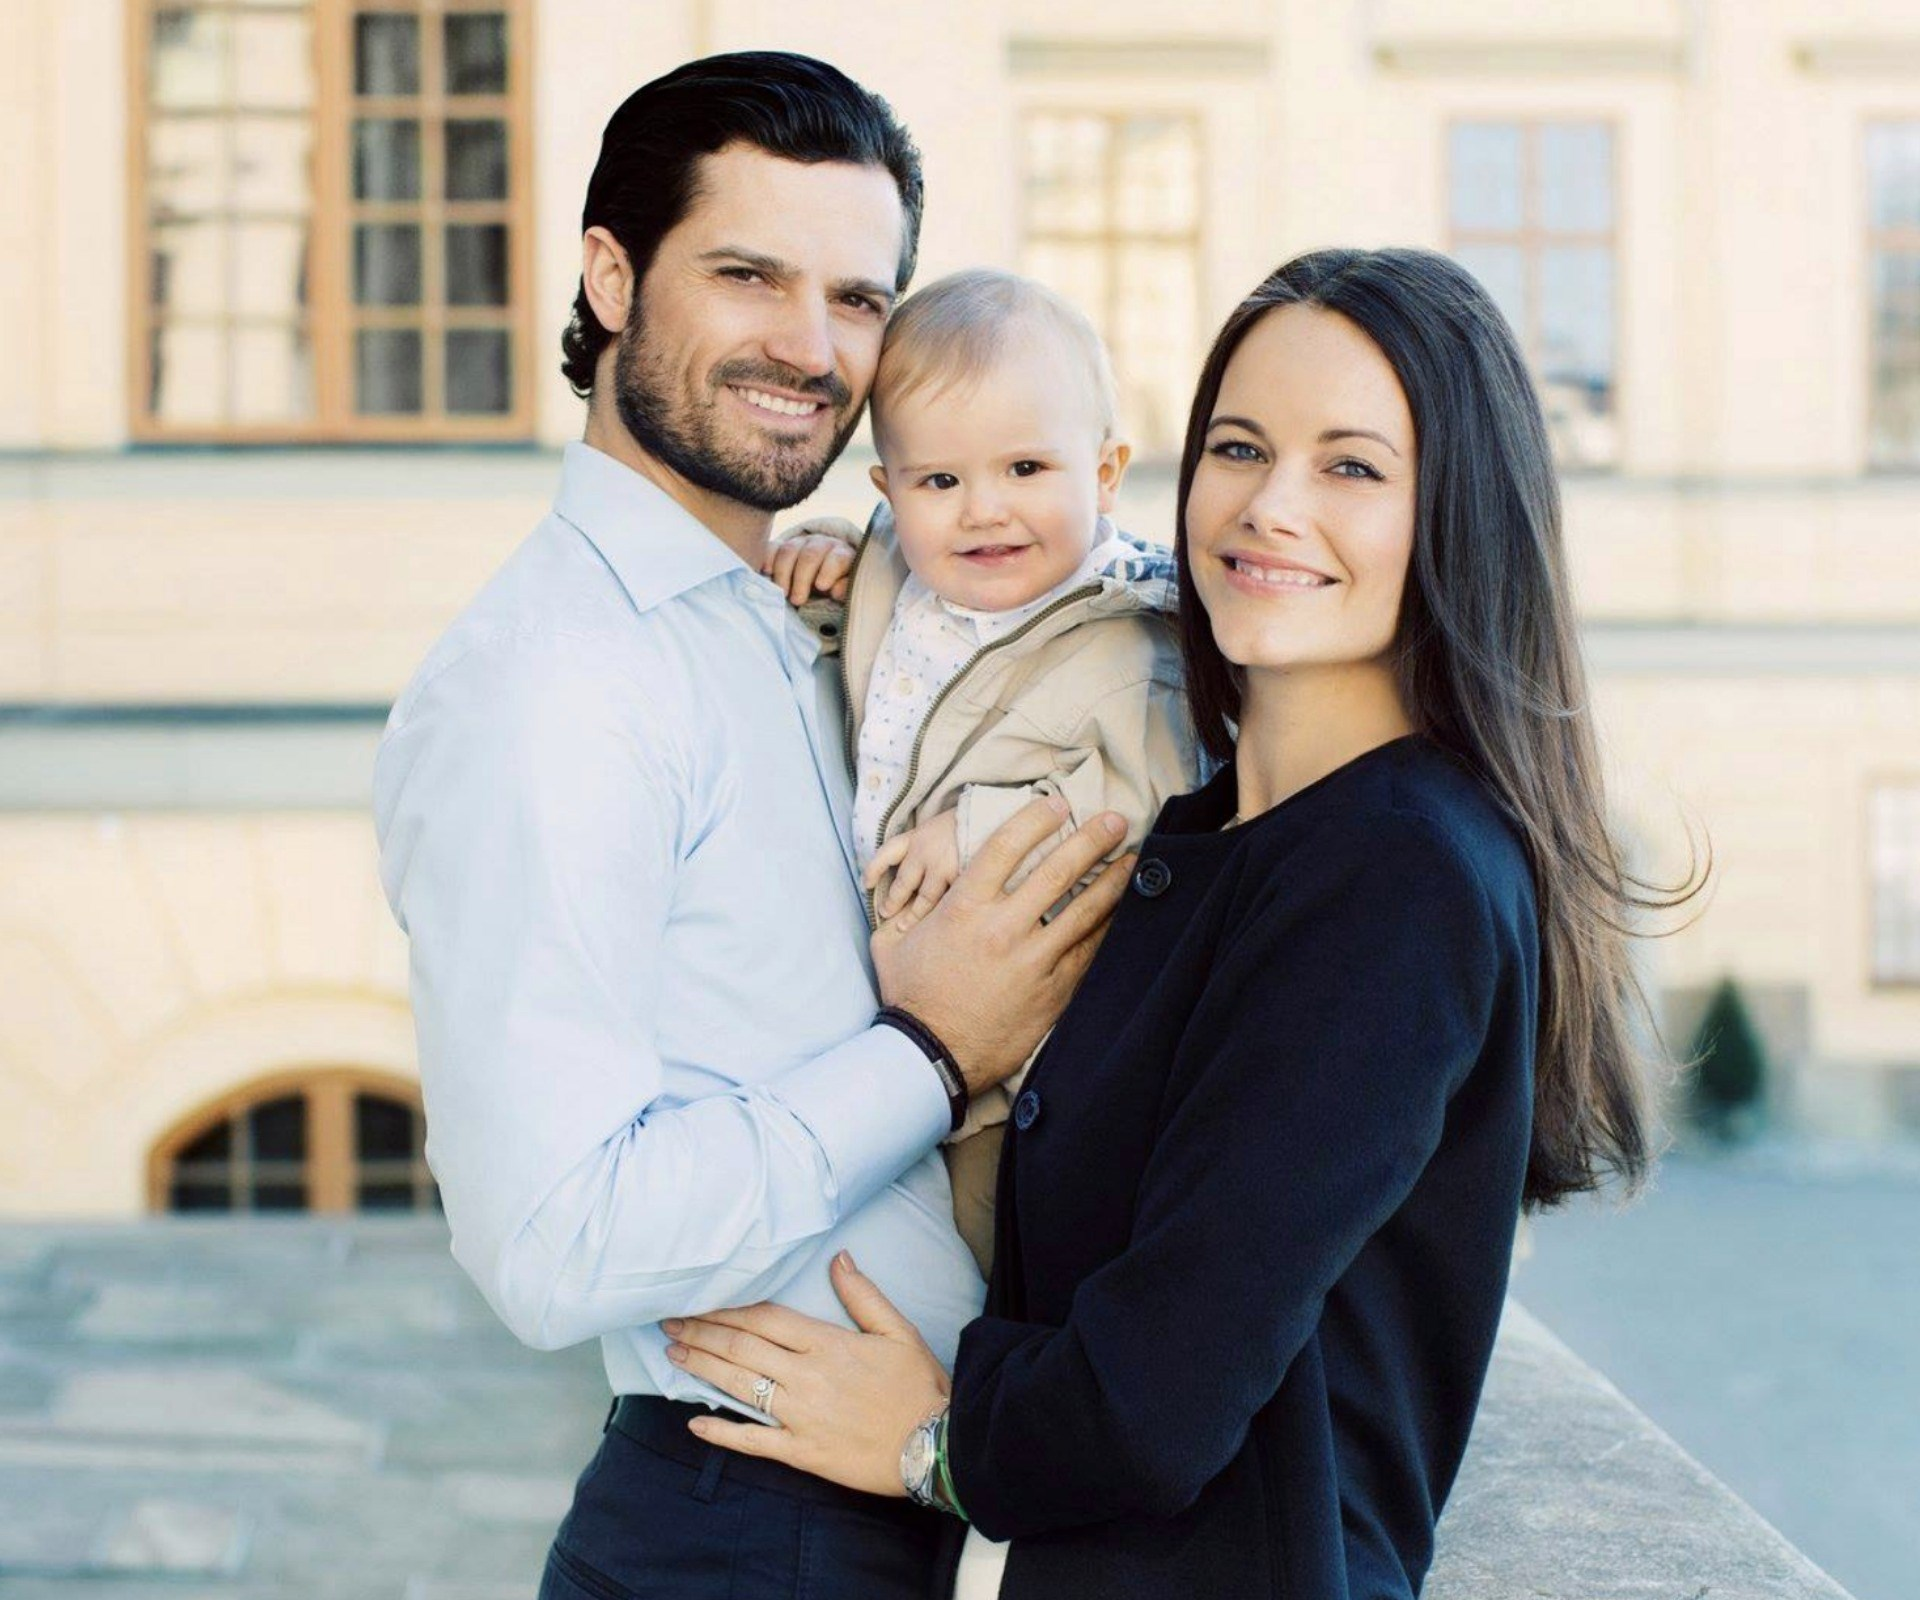 Happy birthday to Prince Alexander of Sweden, who turned one on Wednesday! In honour of the exciting milestone, Sweden's royal palace have released a series of adorable new photos featuring the royal tot and his proud parents, Prince Carl Philip and Princess Sofia. Click through to see them all: